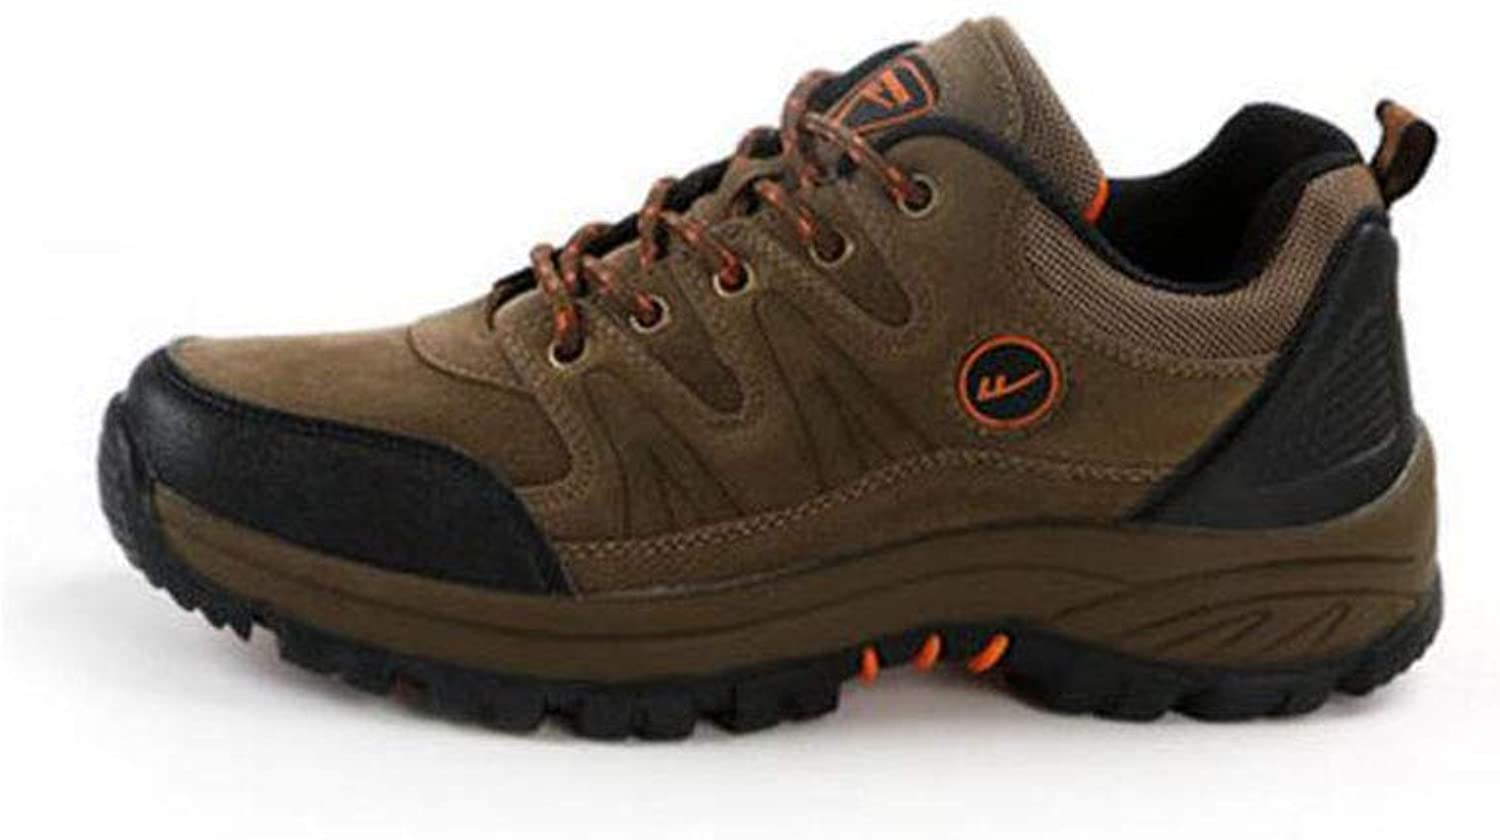 FH Men's shoes Hiking shoes Autumn Dad shoes Waterproof Non-Slip Outdoor Casual Sports shoes Sneakers